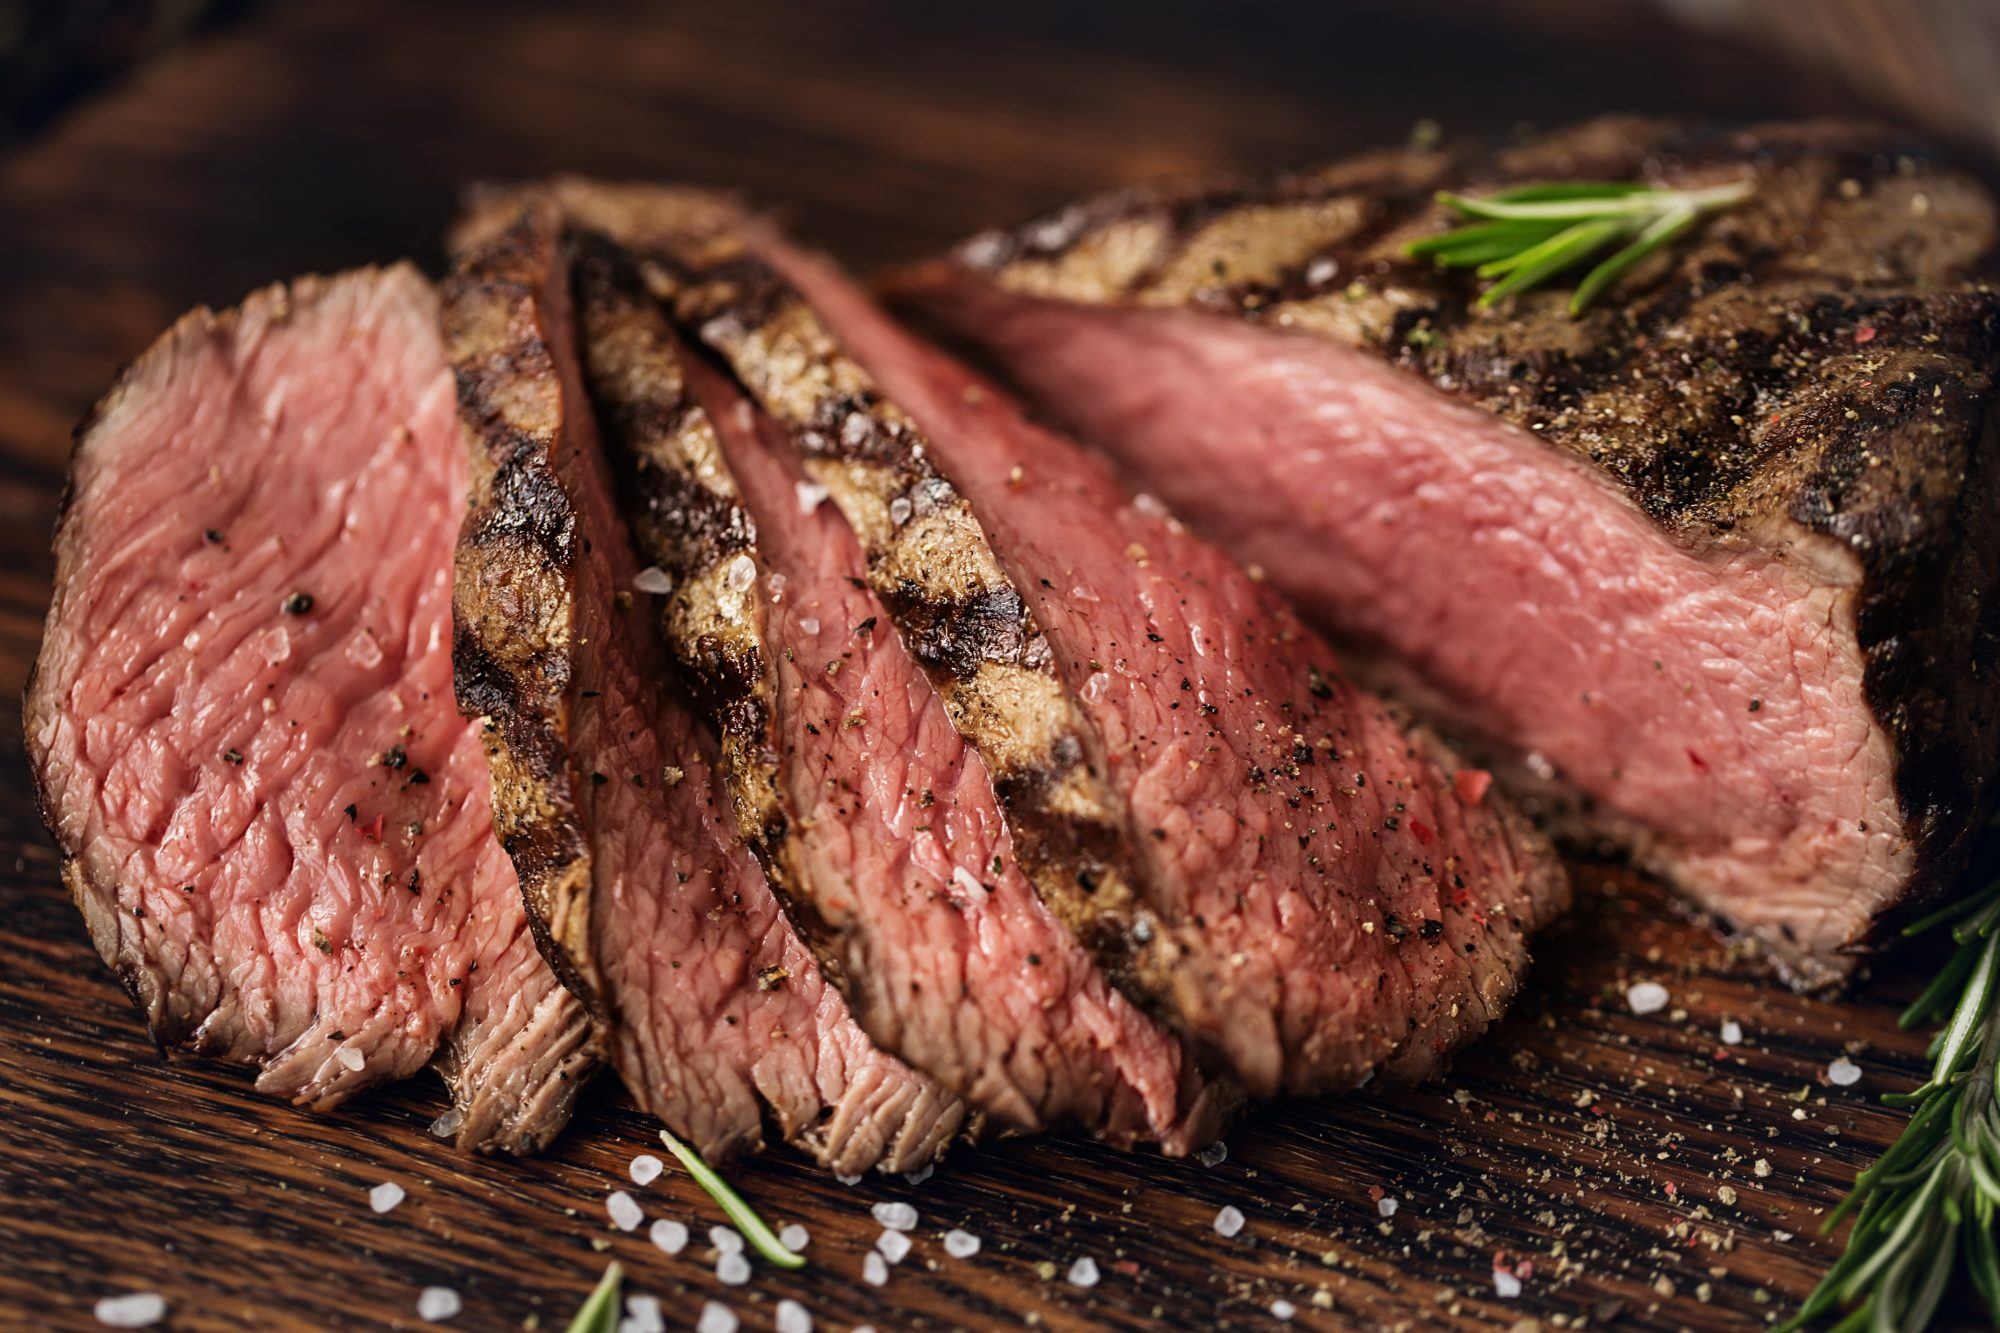 grilled-ribeye-steak-1138471335.jpg